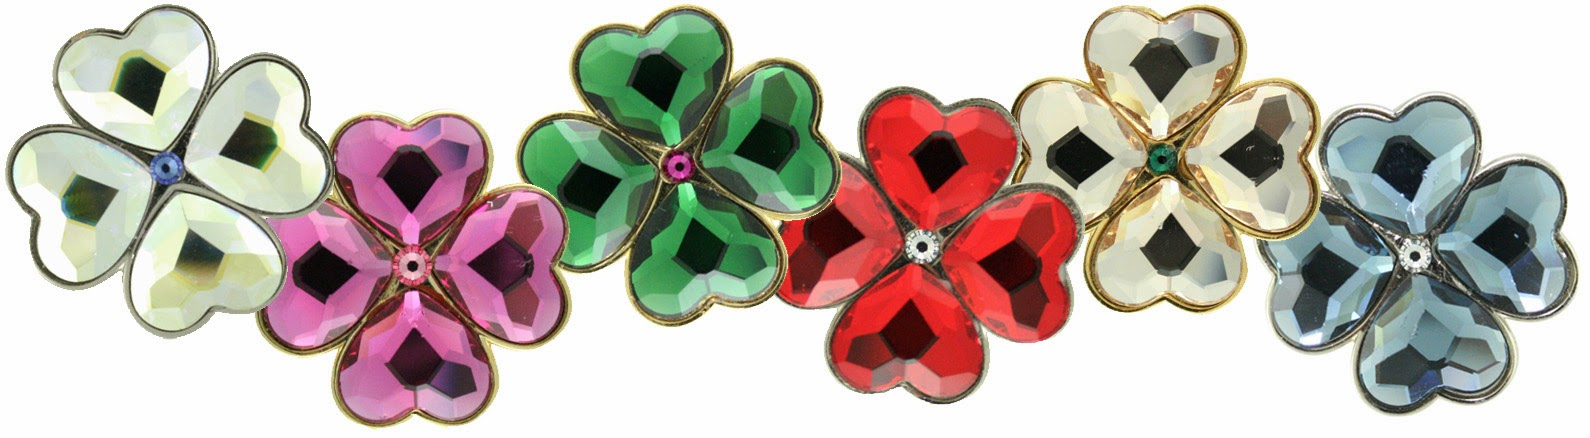 http://www.pinkgolftees.com/ladies-golf-accessories/ball-markers.html